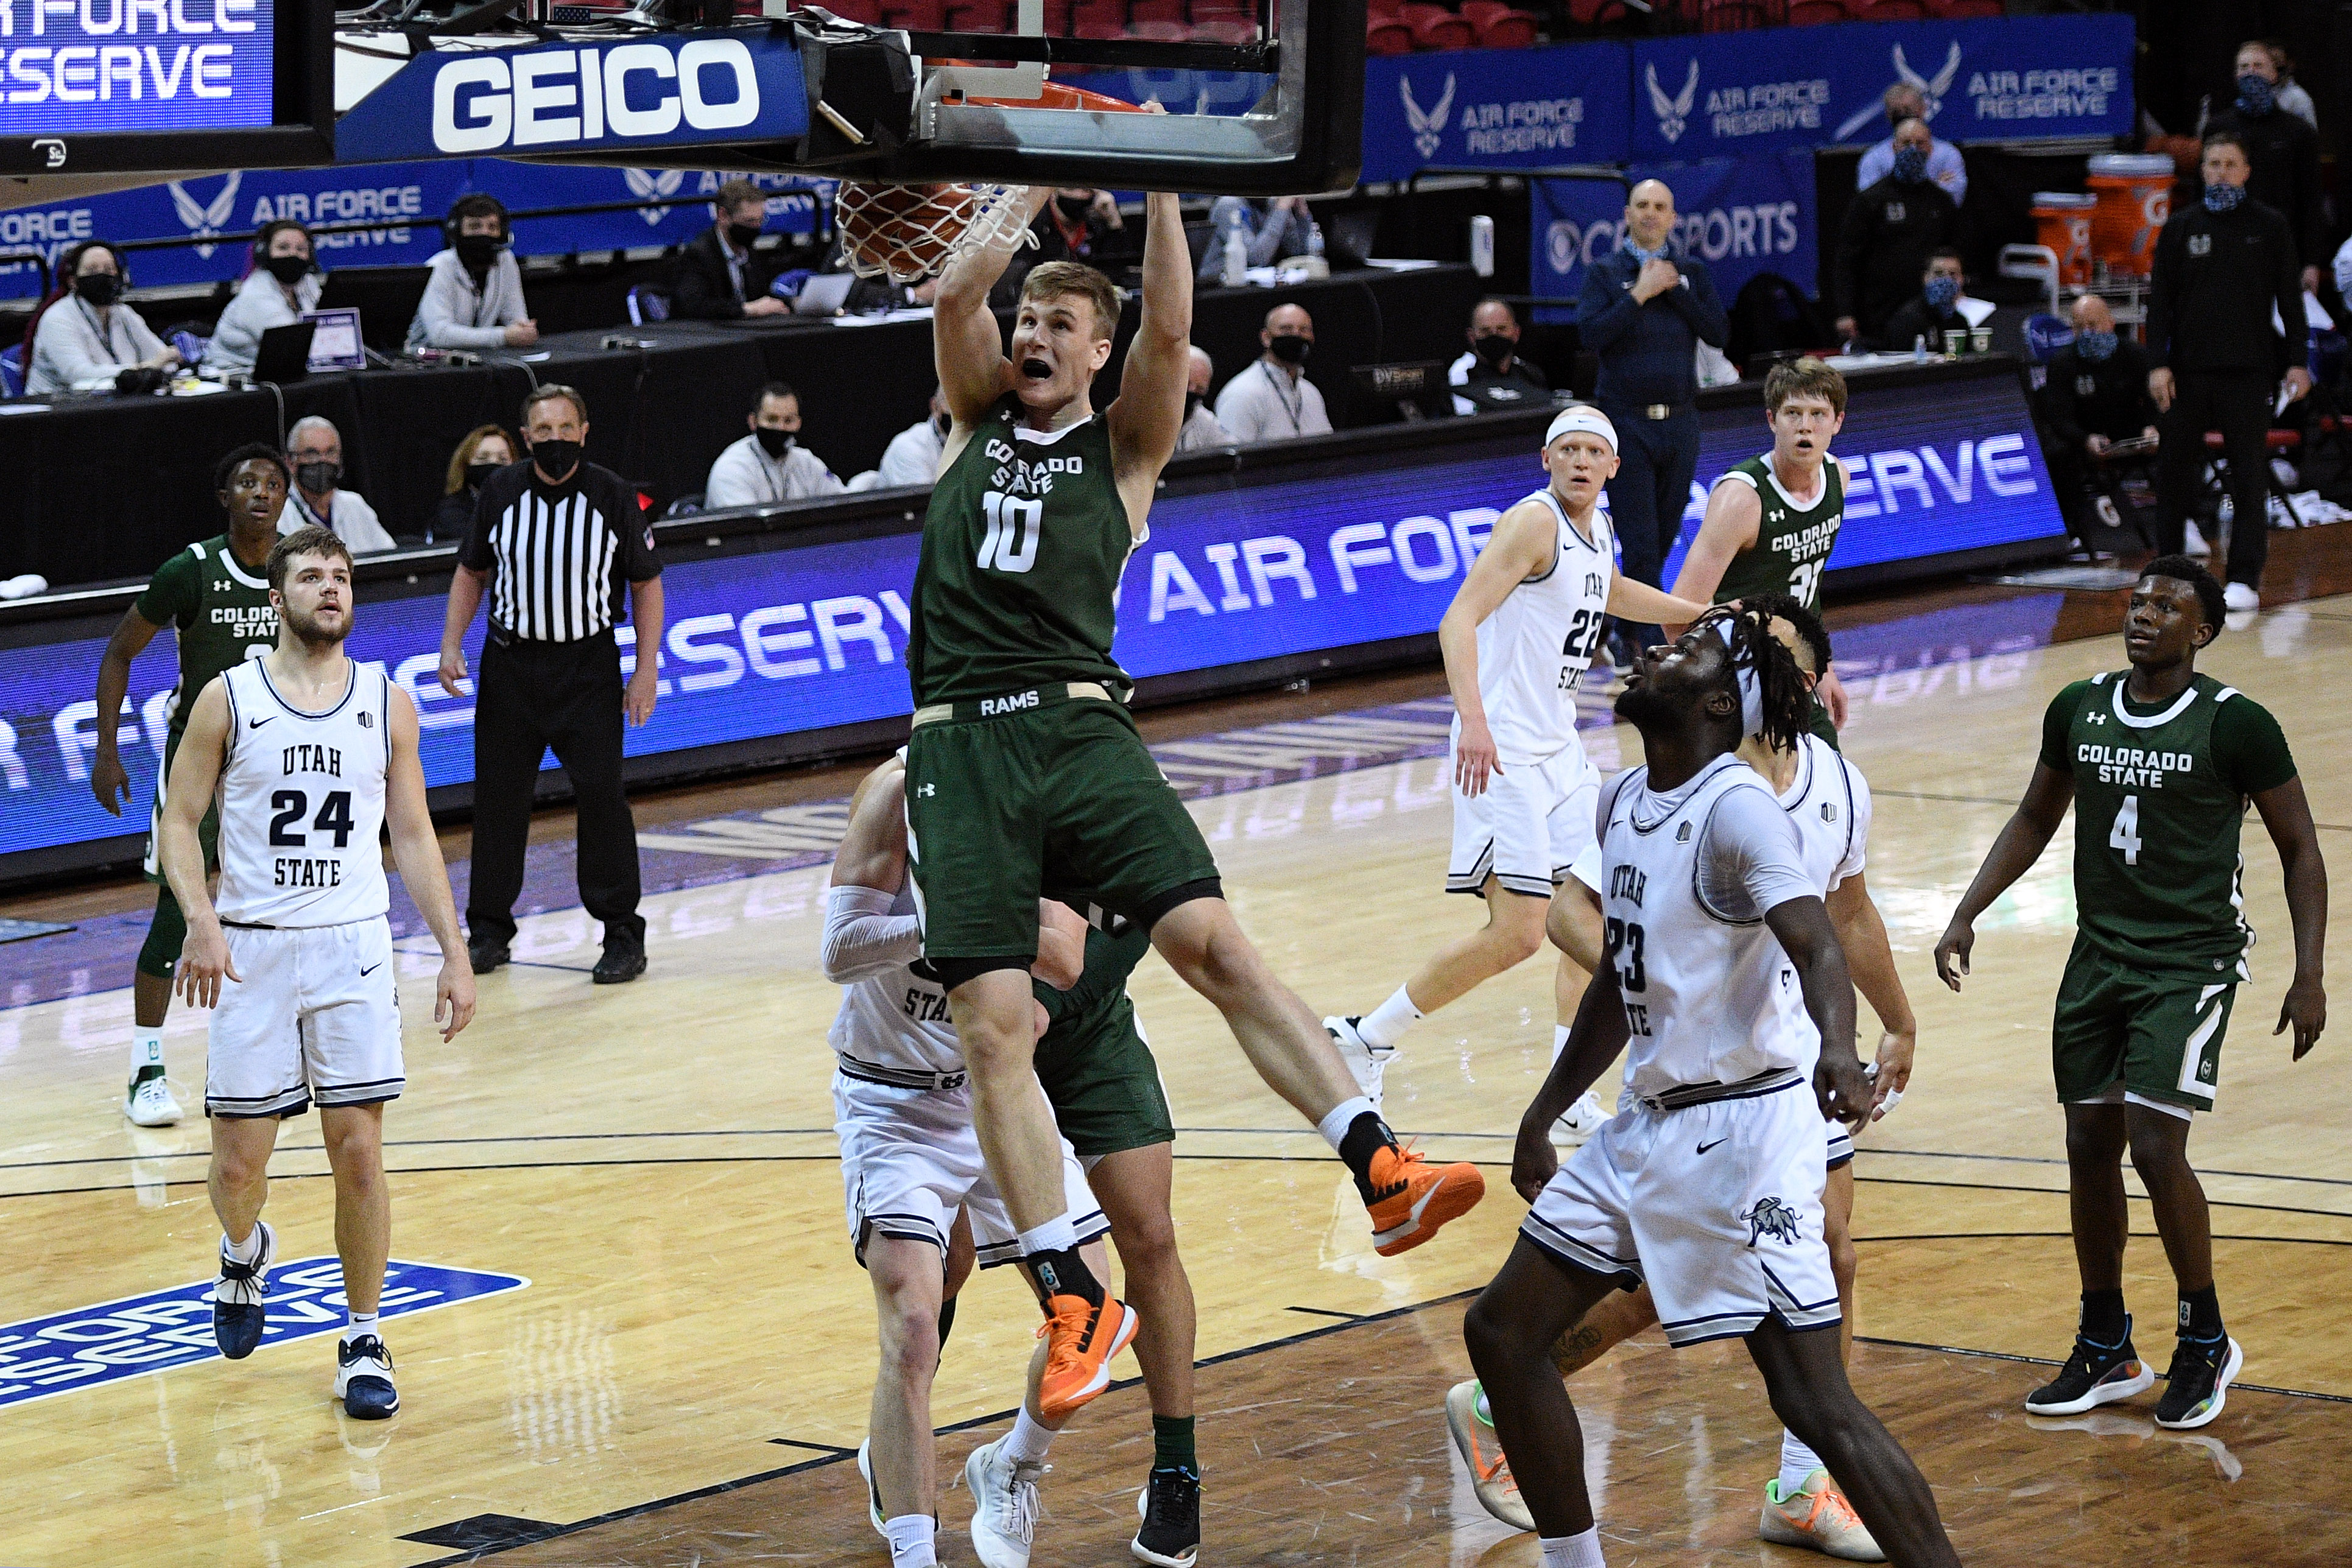 Colorado State Rams forward James Moors dunks the ball against the Utah State Aggies during the second half at Thomas & Mack Center.